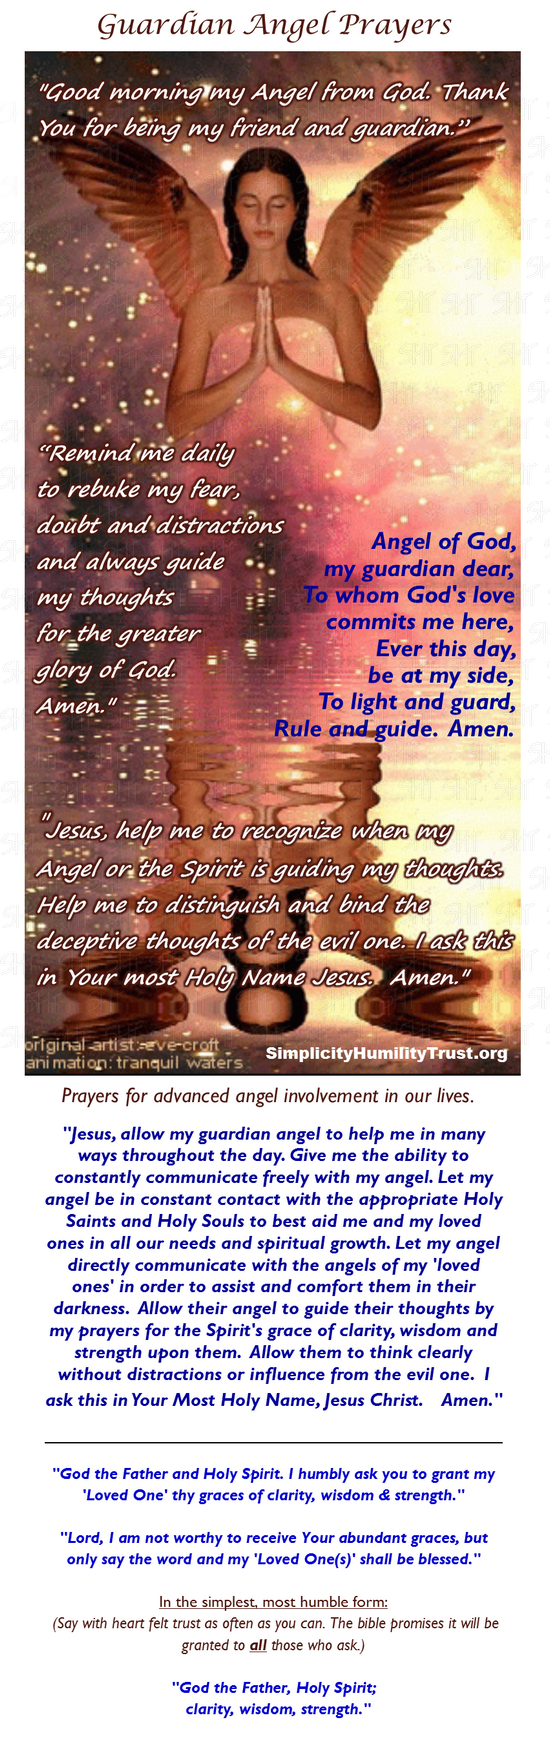 Angel prayers for guidance in marriage